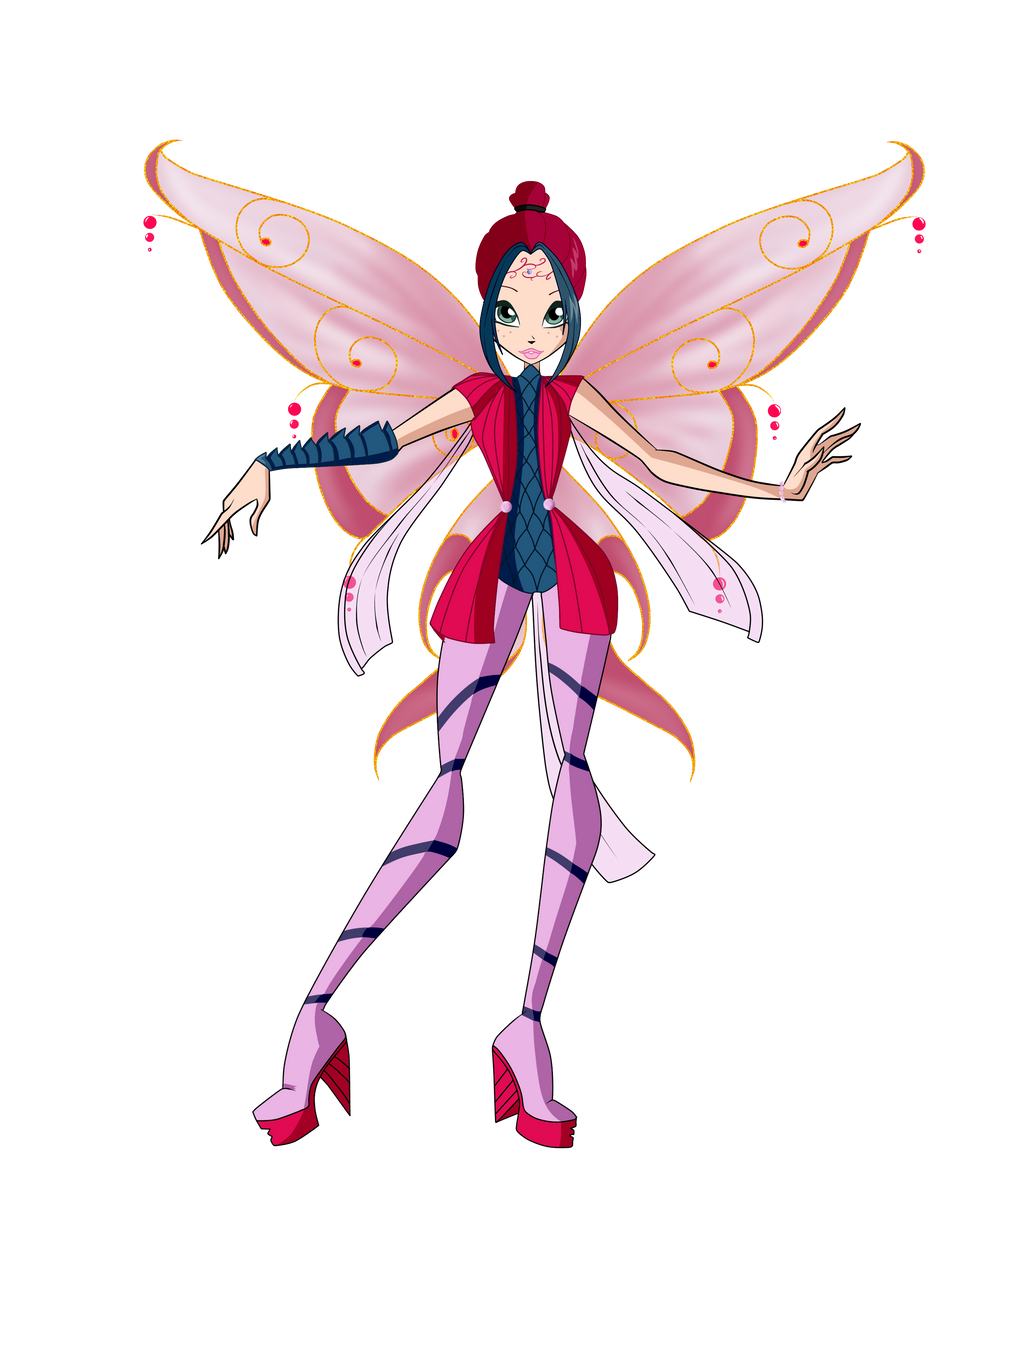 Winx 6 mirta bloomix by gerganafen on deviantart - Winx magic bloomix ...